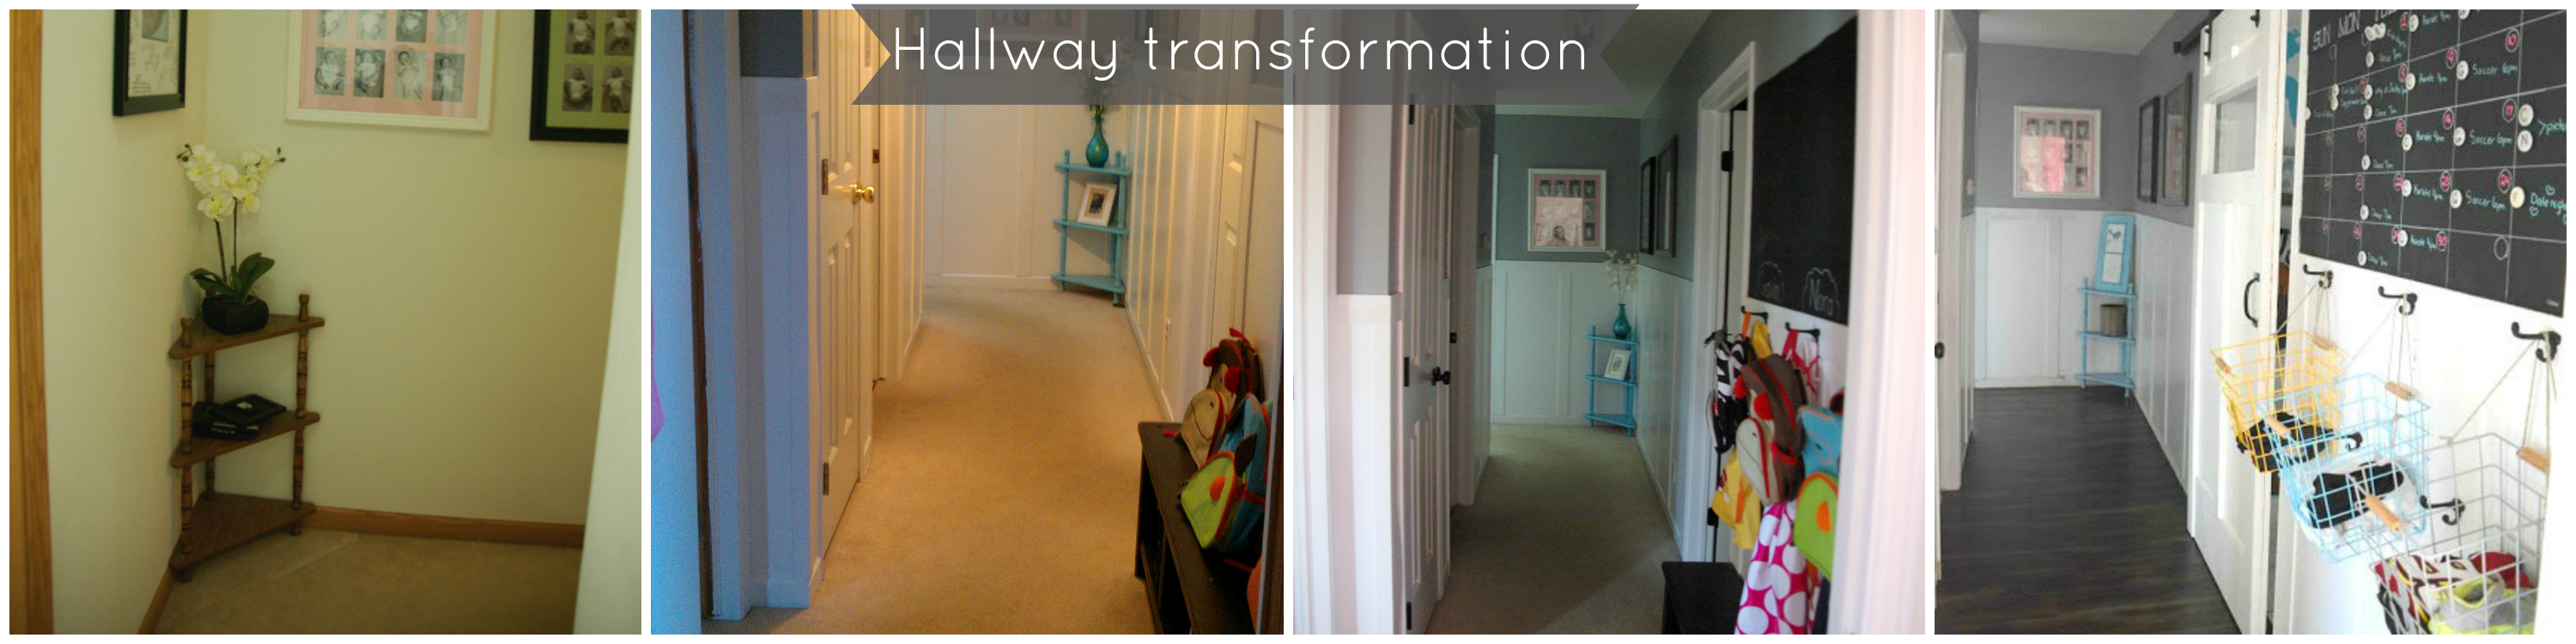 Hallway transformation, DIY wainscoting